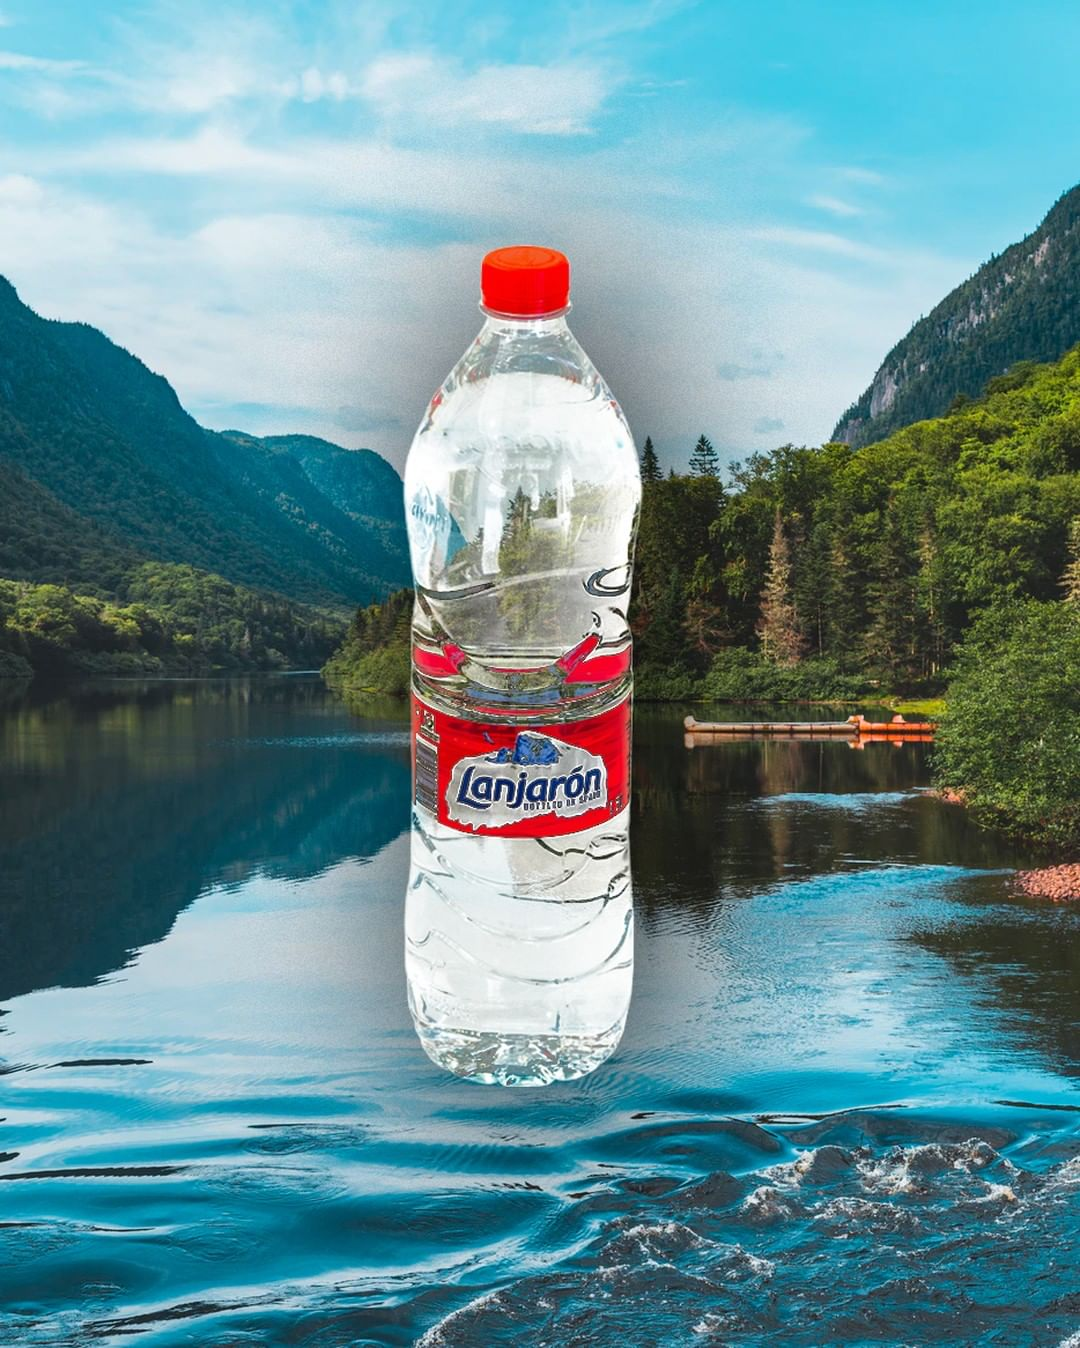 #Lanjaron Natural Mineral Water.⁠ ⁠ Mineral water is bottled at the source. Mineral water includes calcium, magnesium, potassium, sodium, iron, zinc.⁠ ⁠ What better way to give your body what it needs than through natural #mineralwater.